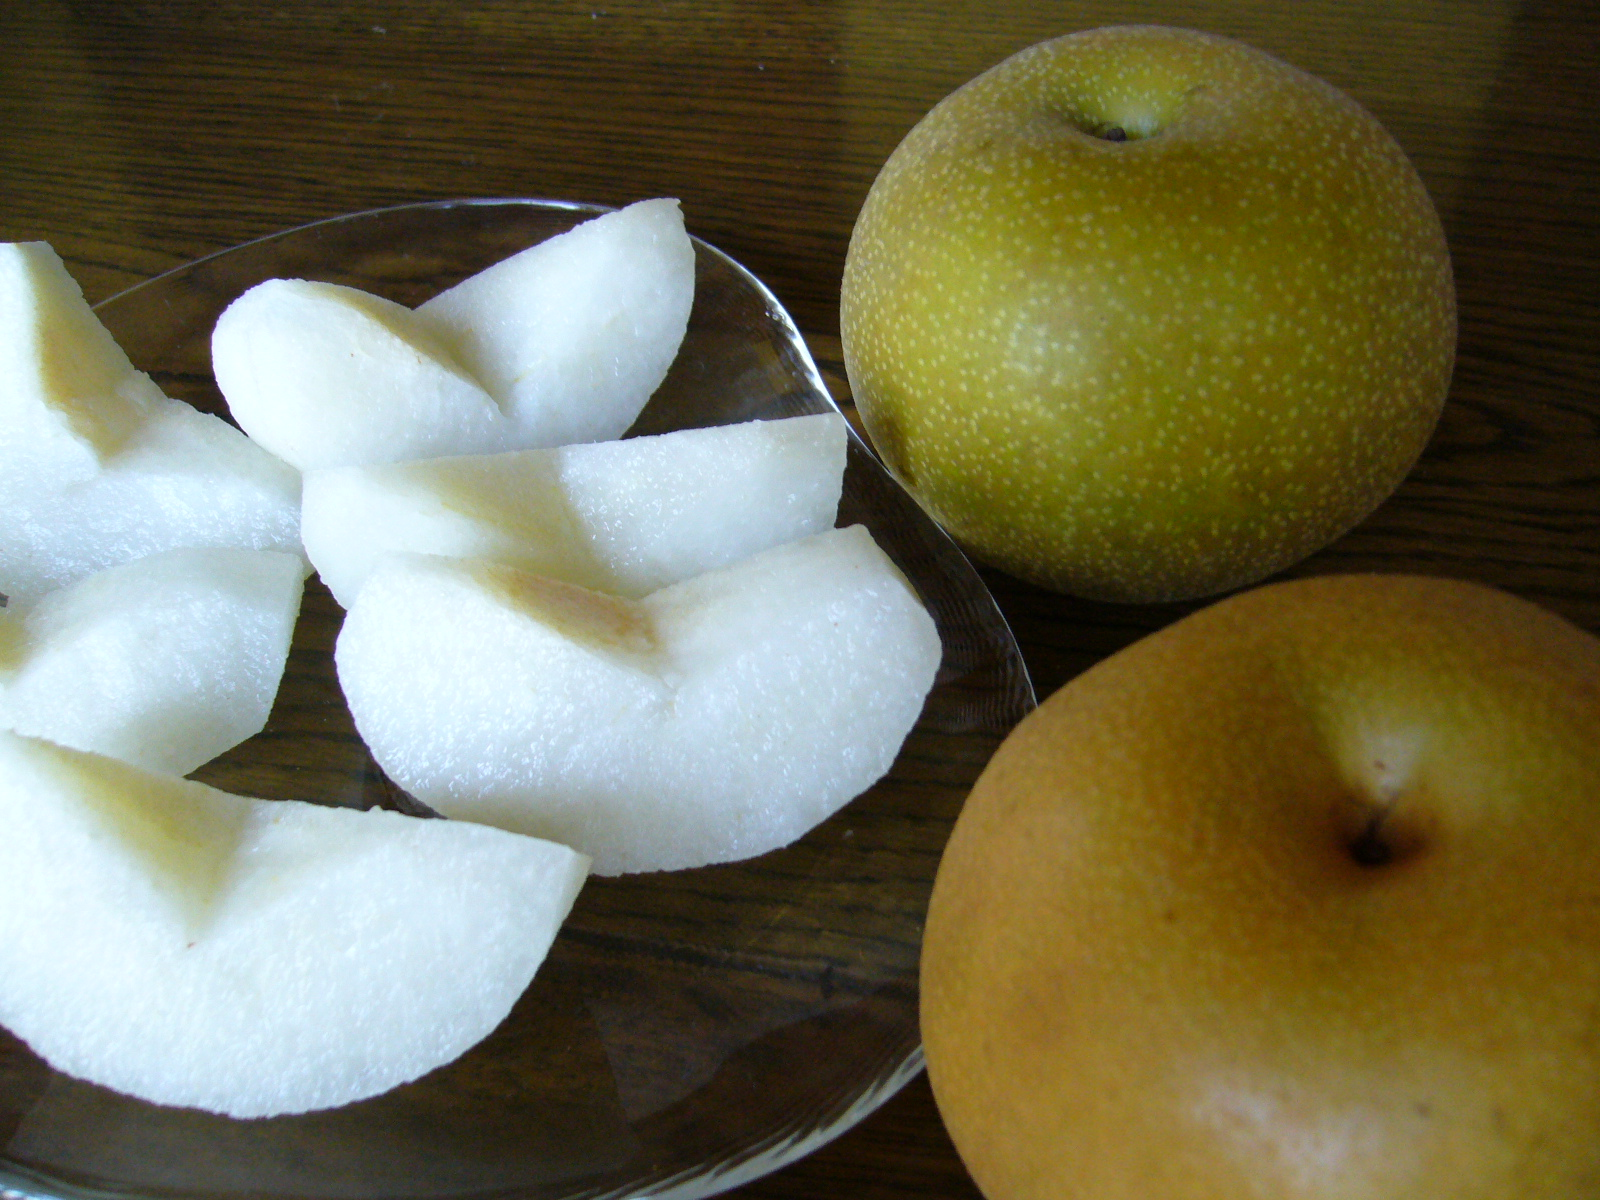 Nashi pears, taste like pears, look like apples